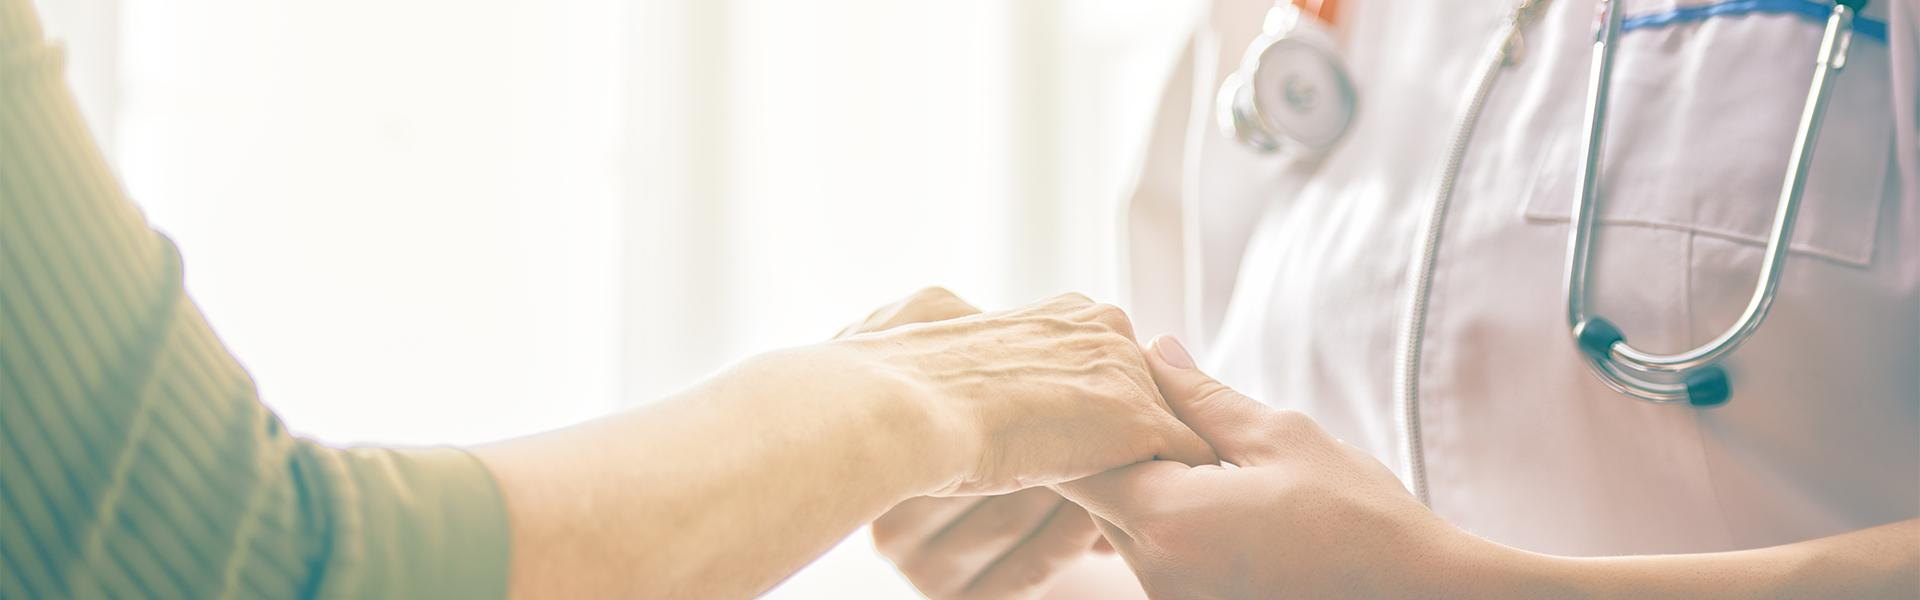 A nurse holding an elder's hand showing care